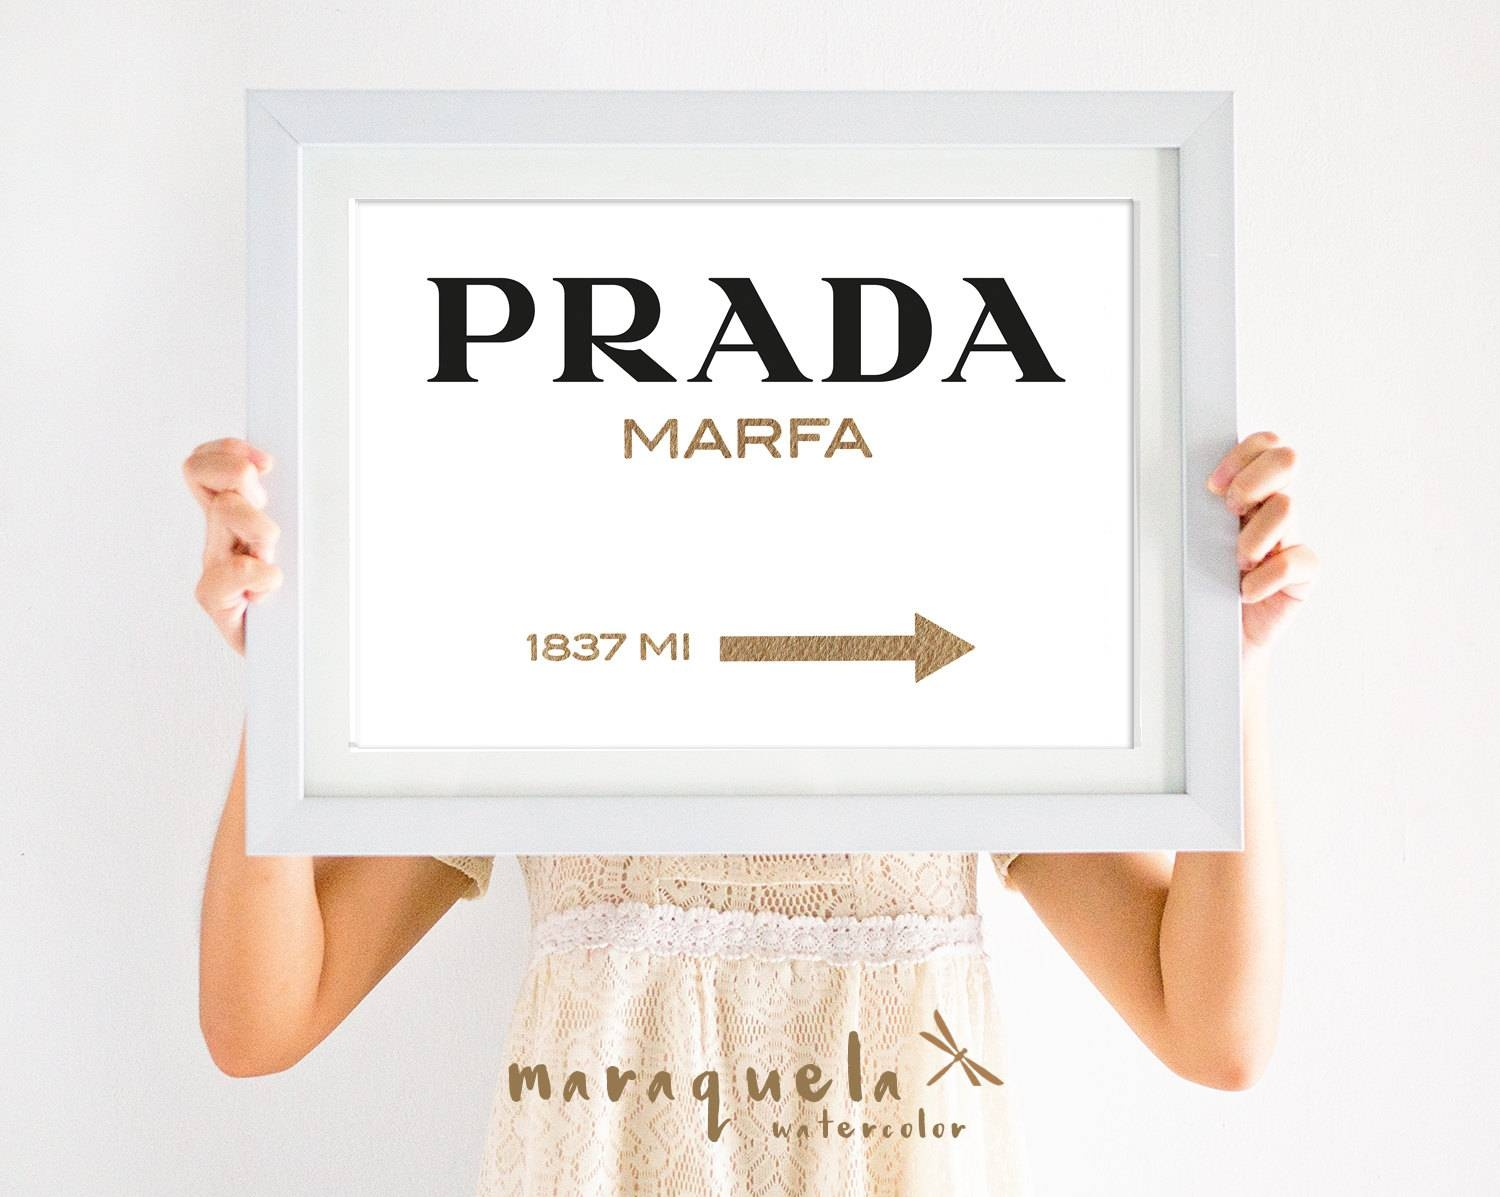 Original Prada Marfa Watercolor Golden Letters Inspired Wall Art Inside Newest Prada Marfa Wall Art (View 12 of 25)